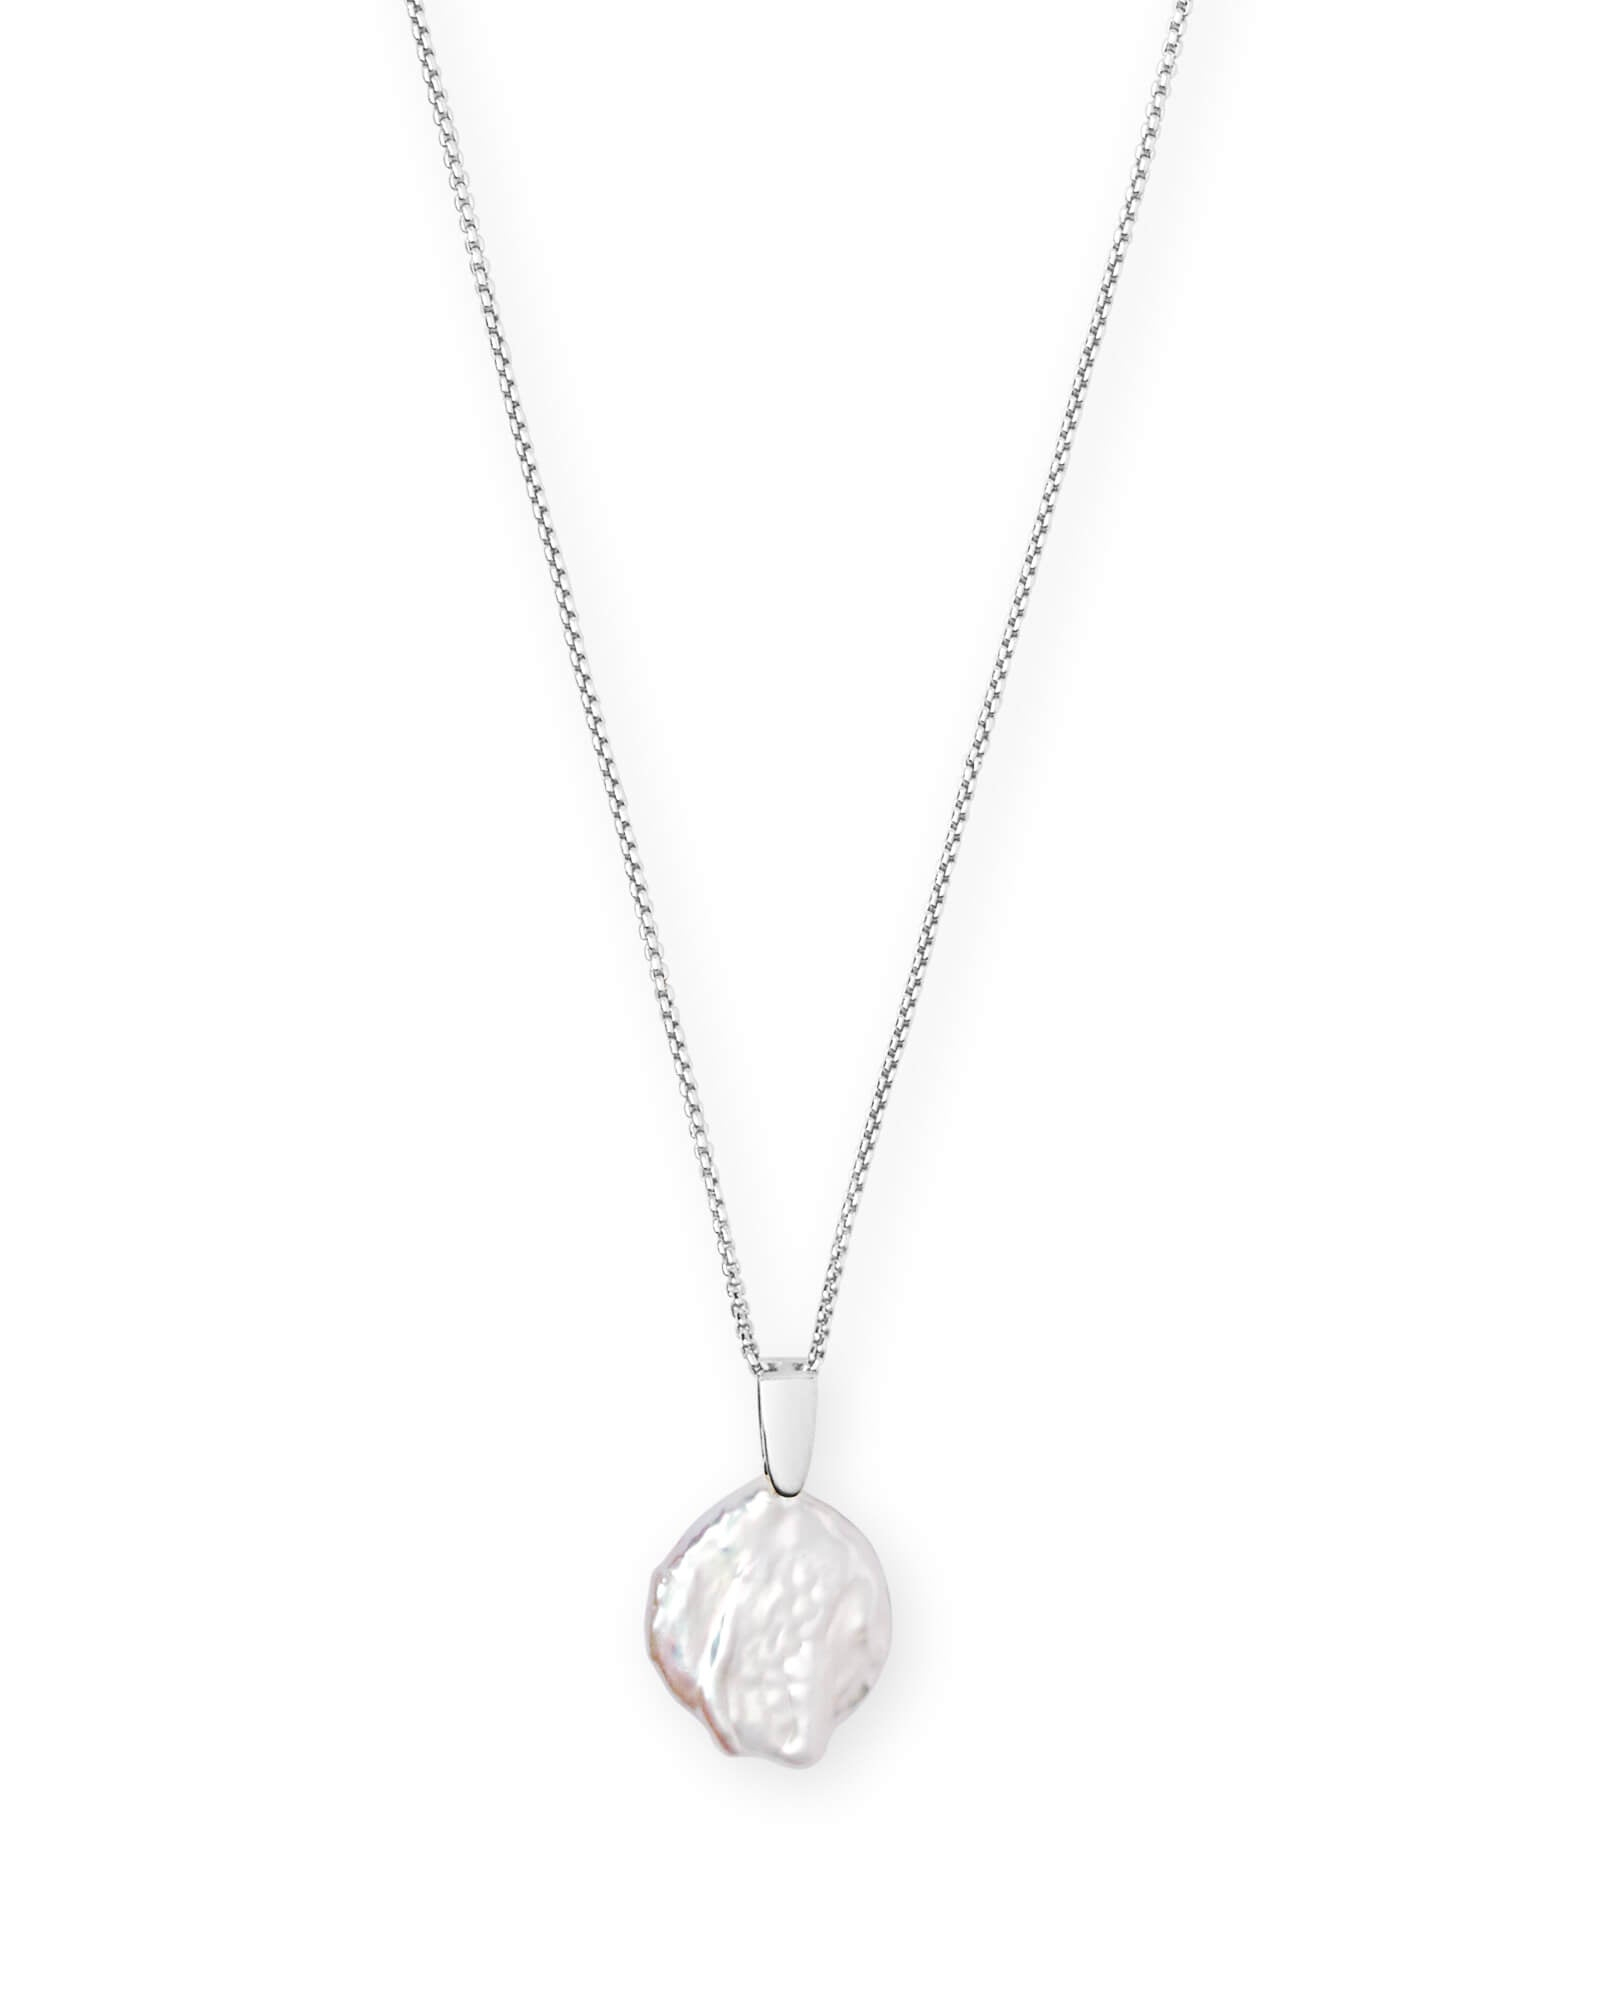 Kendra Scott Priscilla Bright Silver Pendant Necklace In Pearl